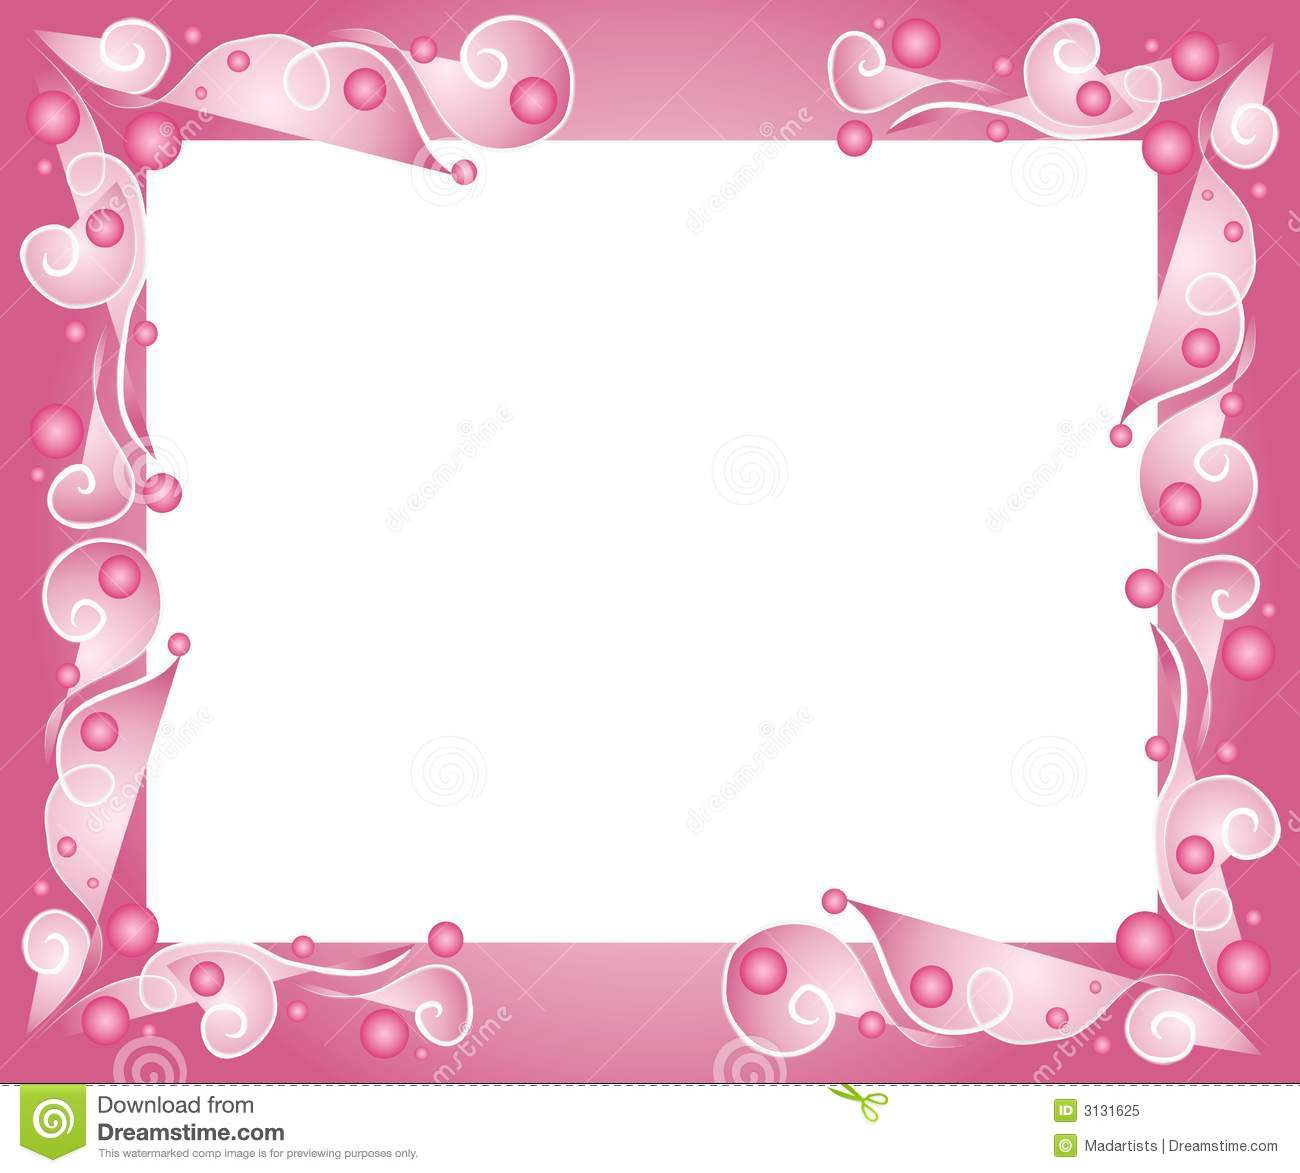 Cute Bordered Pastel Flower Wallpaper Decorative Pink Frame Border Royalty Free Stock Photo